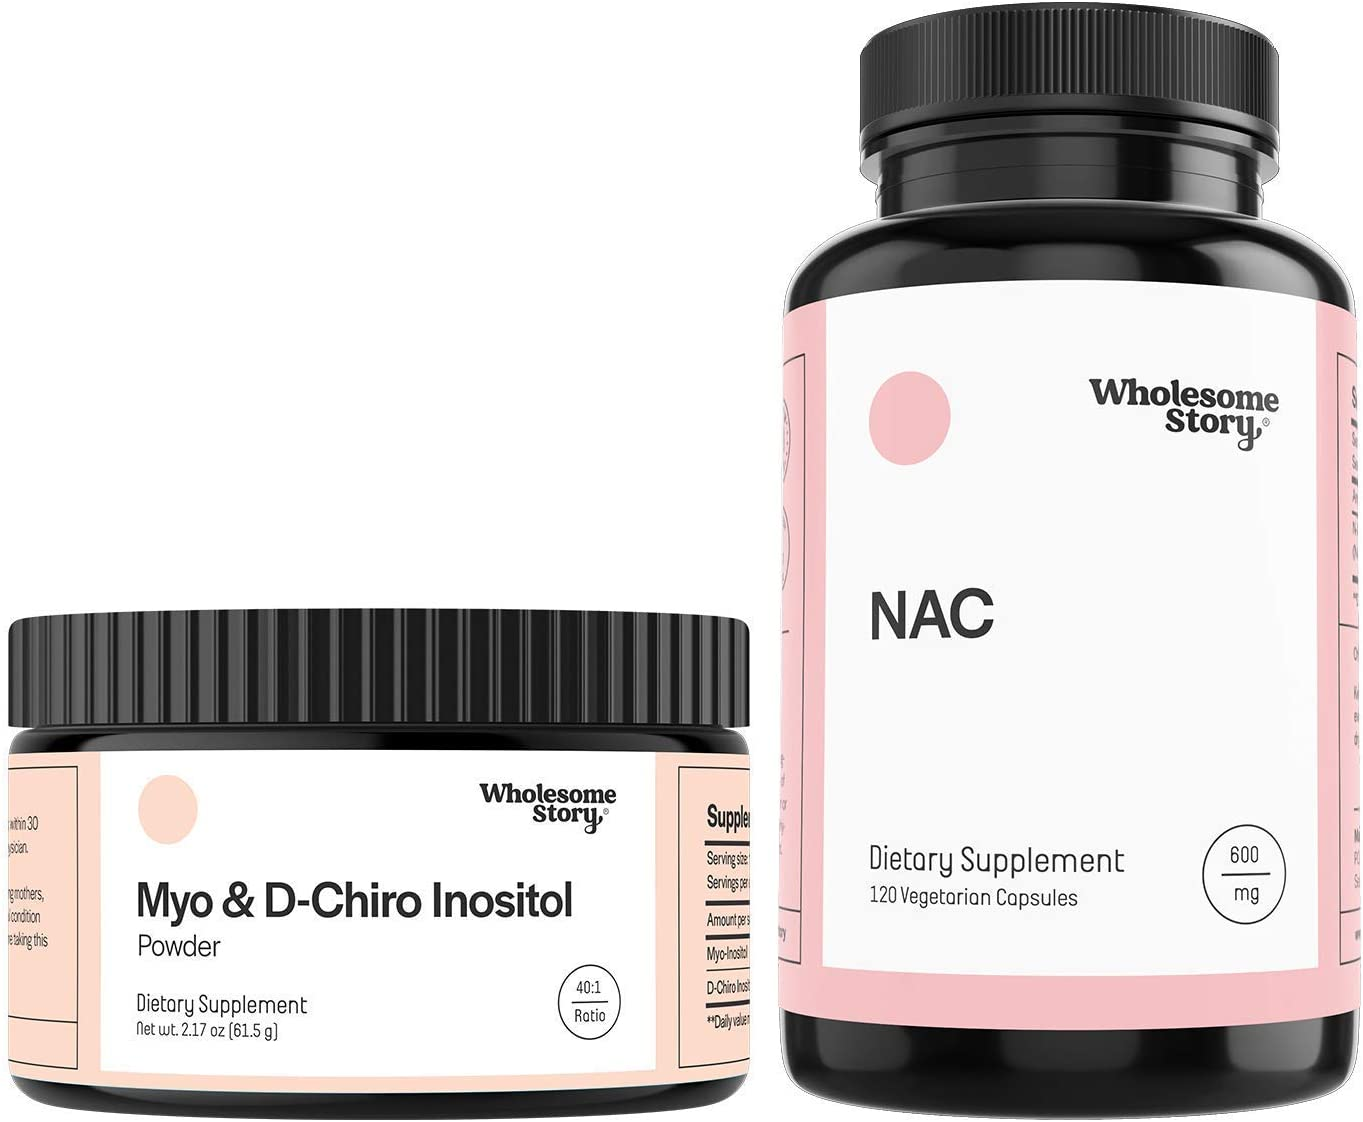 Myo & D-Chiro Inositol Powder + NAC | Hormone Balance, Healthy Ovarian Function, Fertility & Mucolytic Support | Vegan Friendly